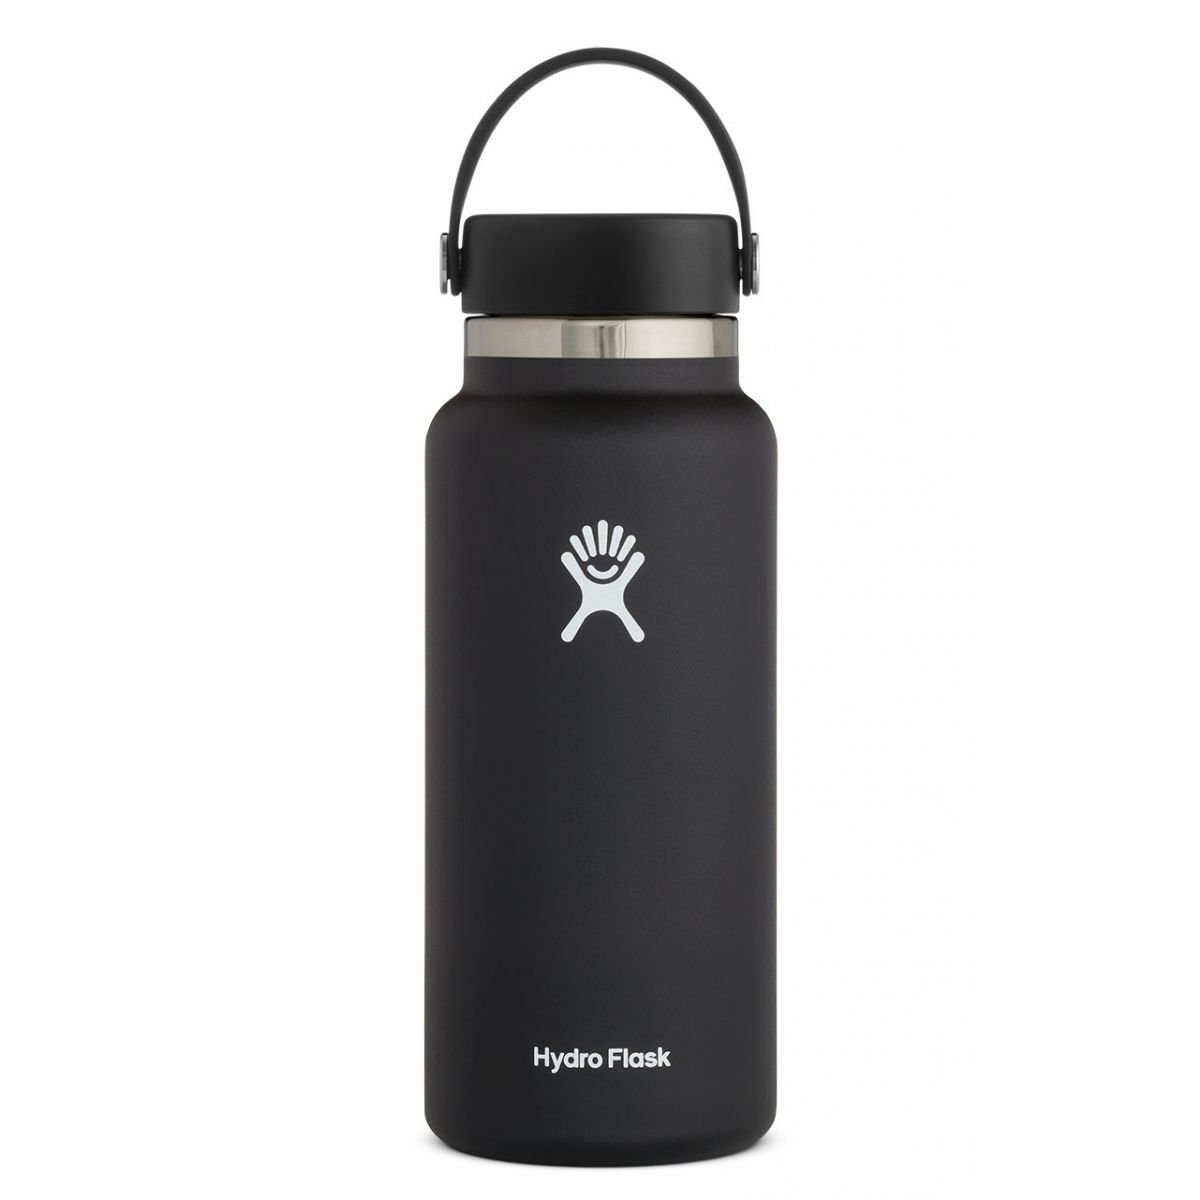 Hydro Flask 32 oz (946 ml) Wide Mouth - Black - Pre Order